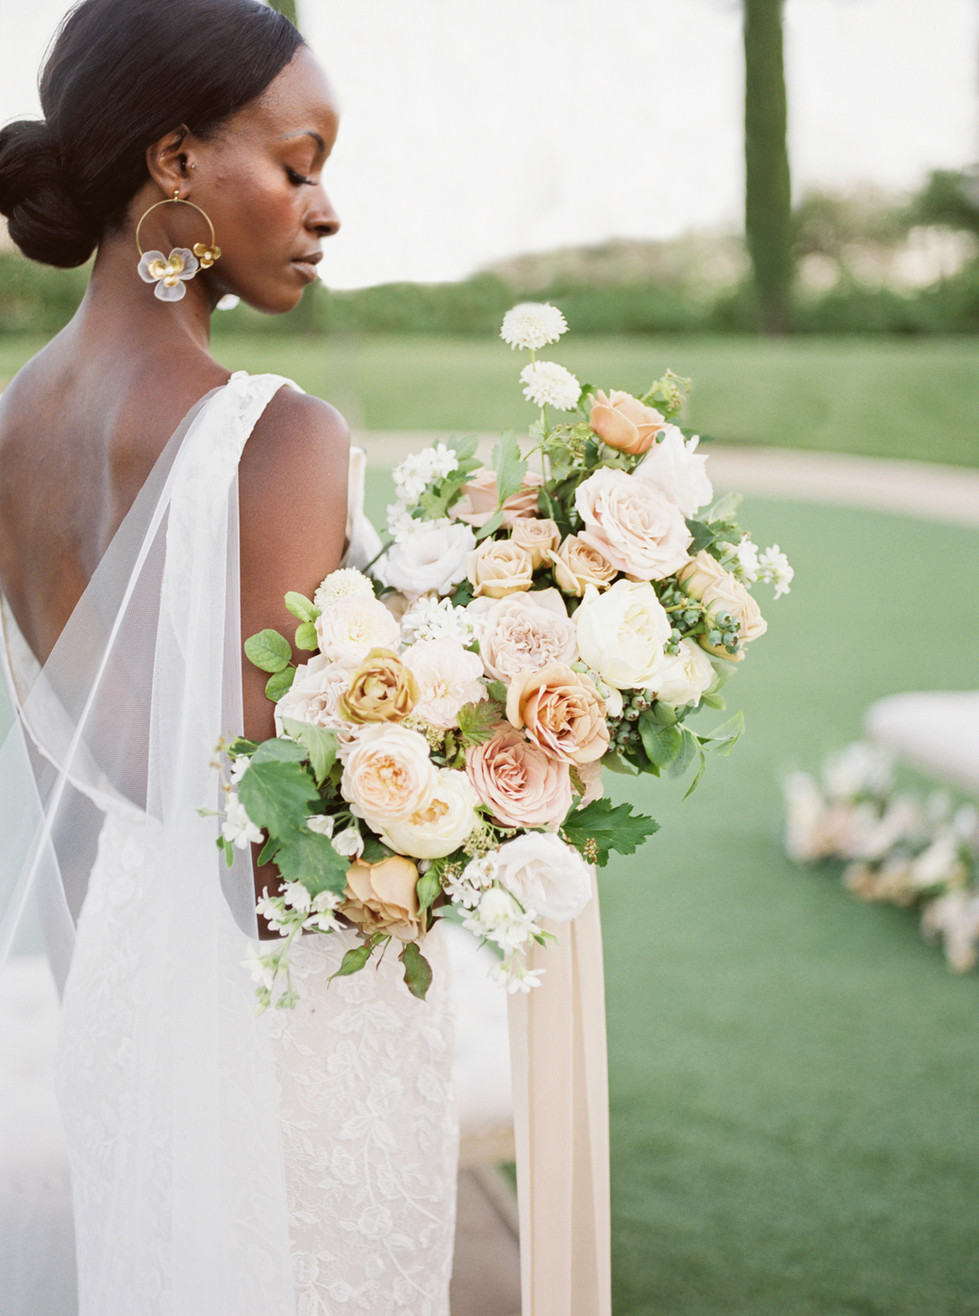 Dusty rose, taupe, and ivory bridal bouquet. Photo: Lianna Marie